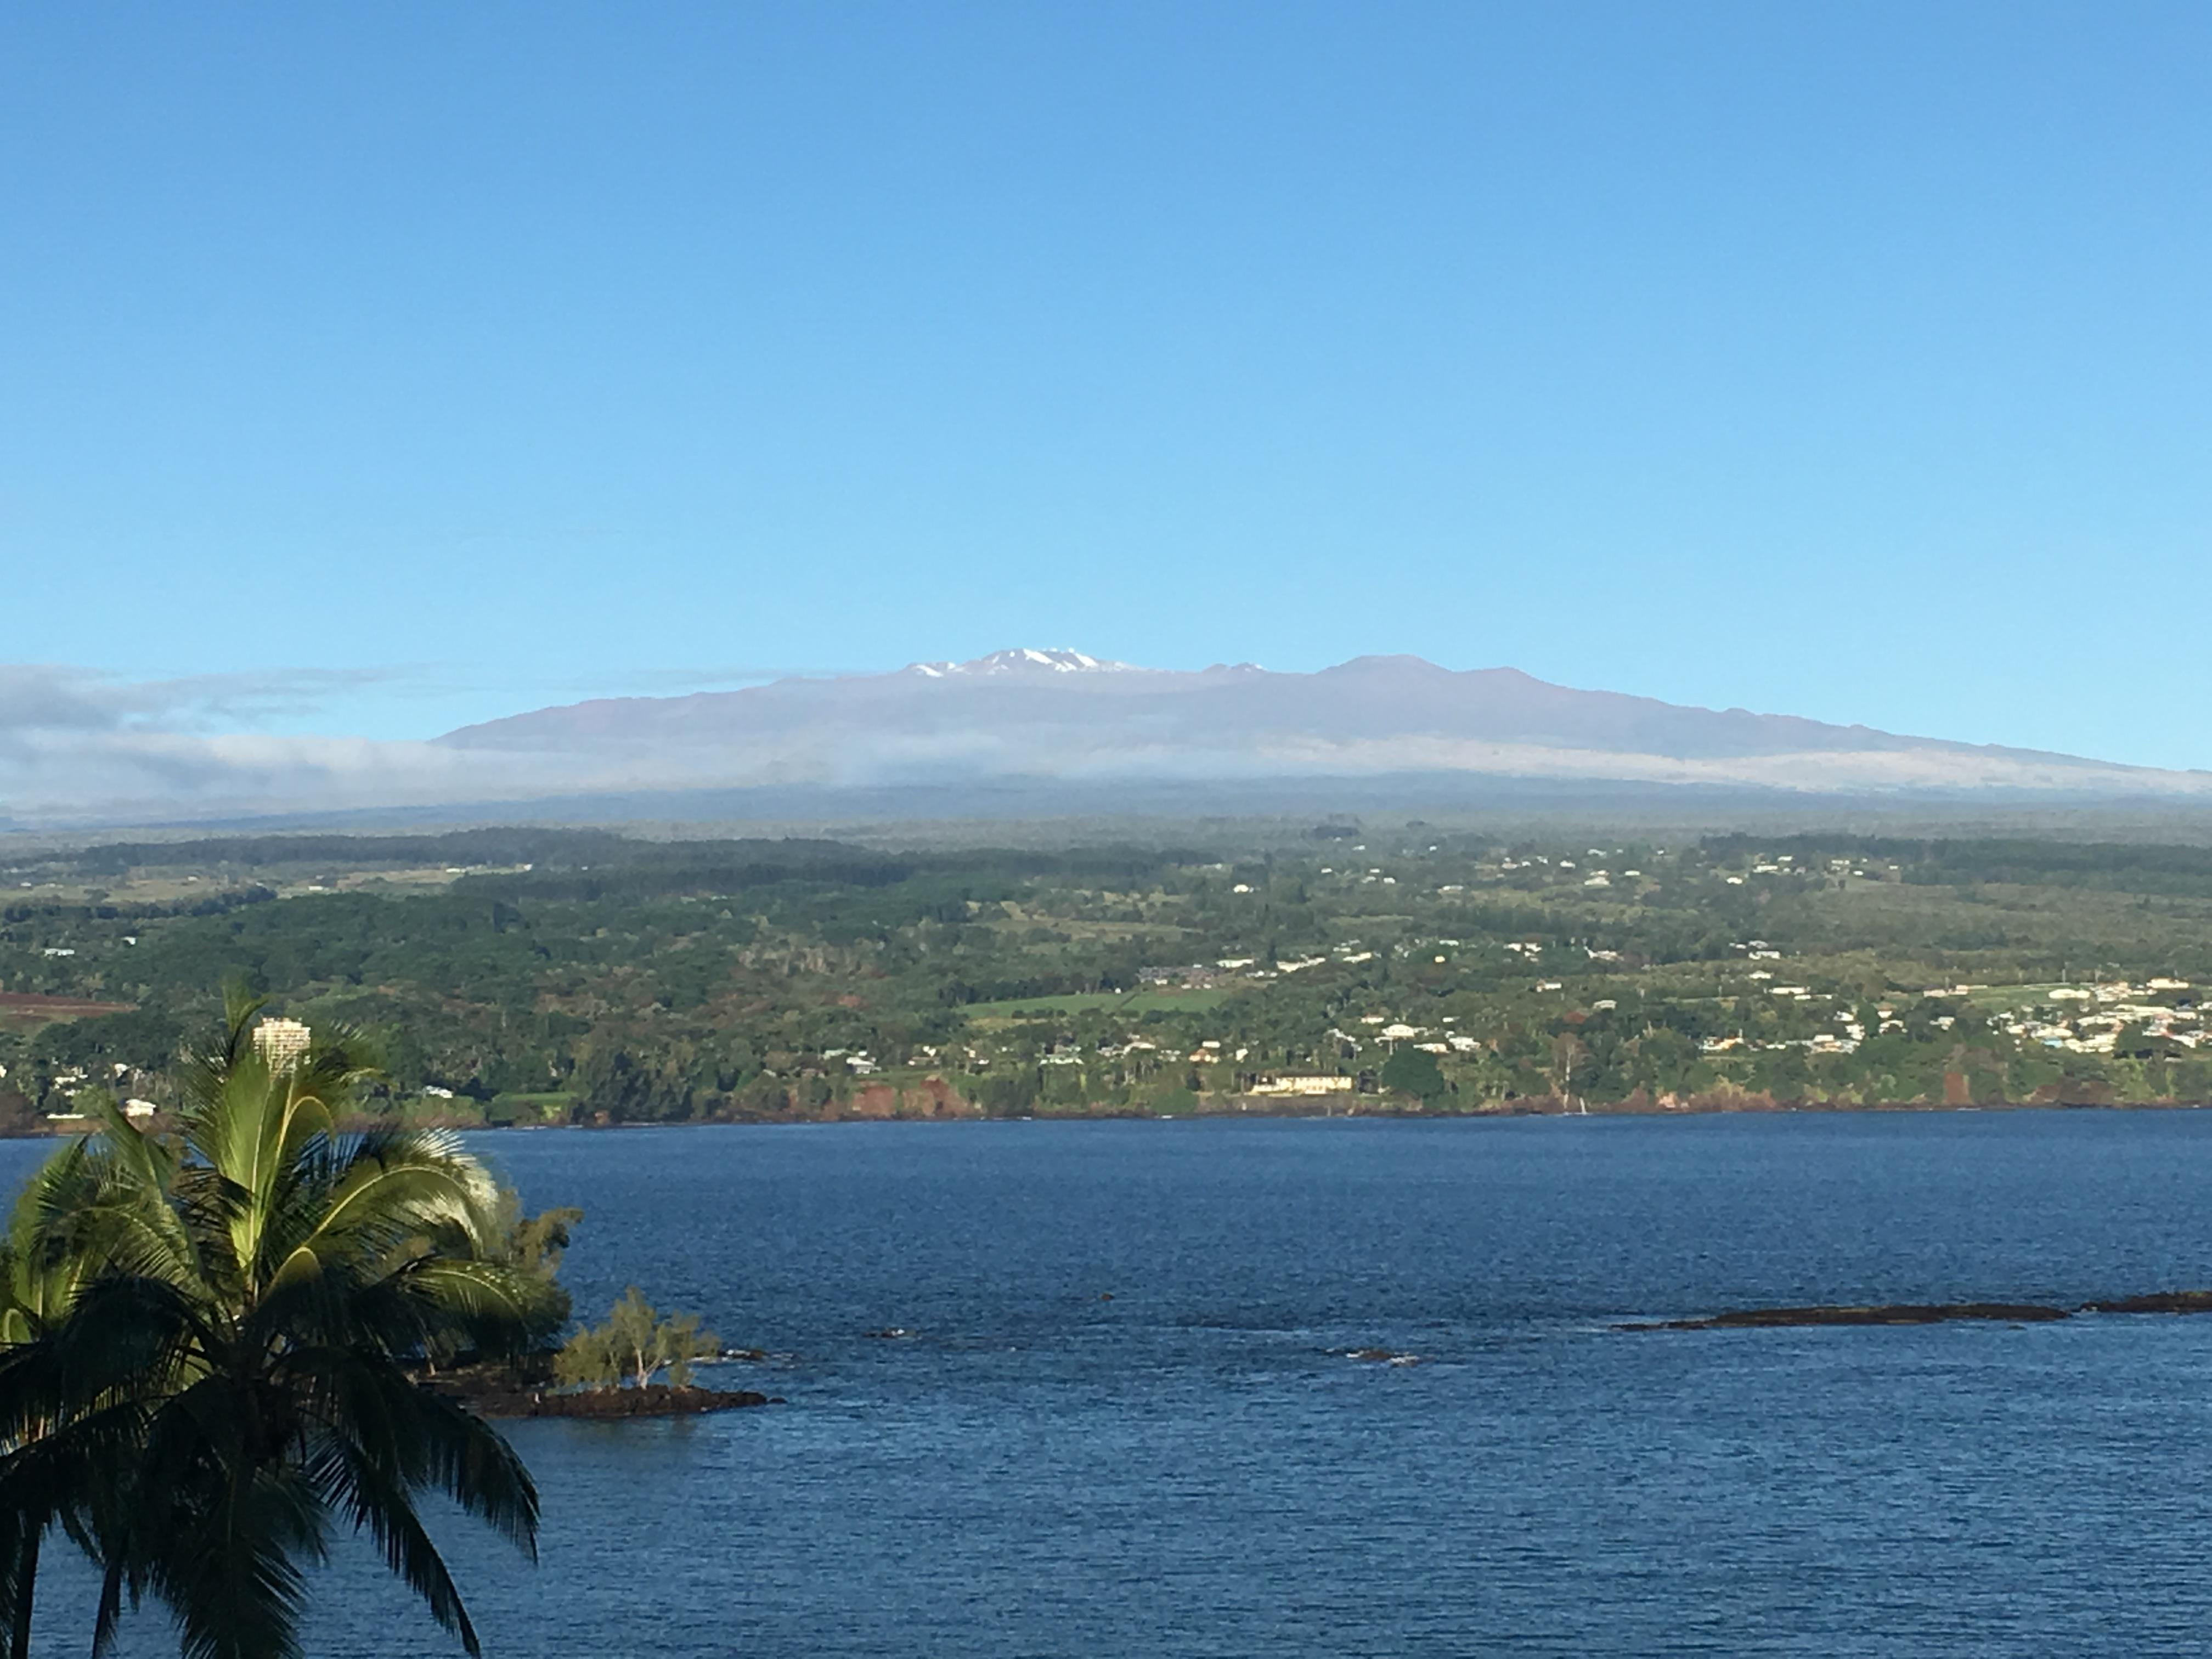 View of Mauna Kea from our lanai.